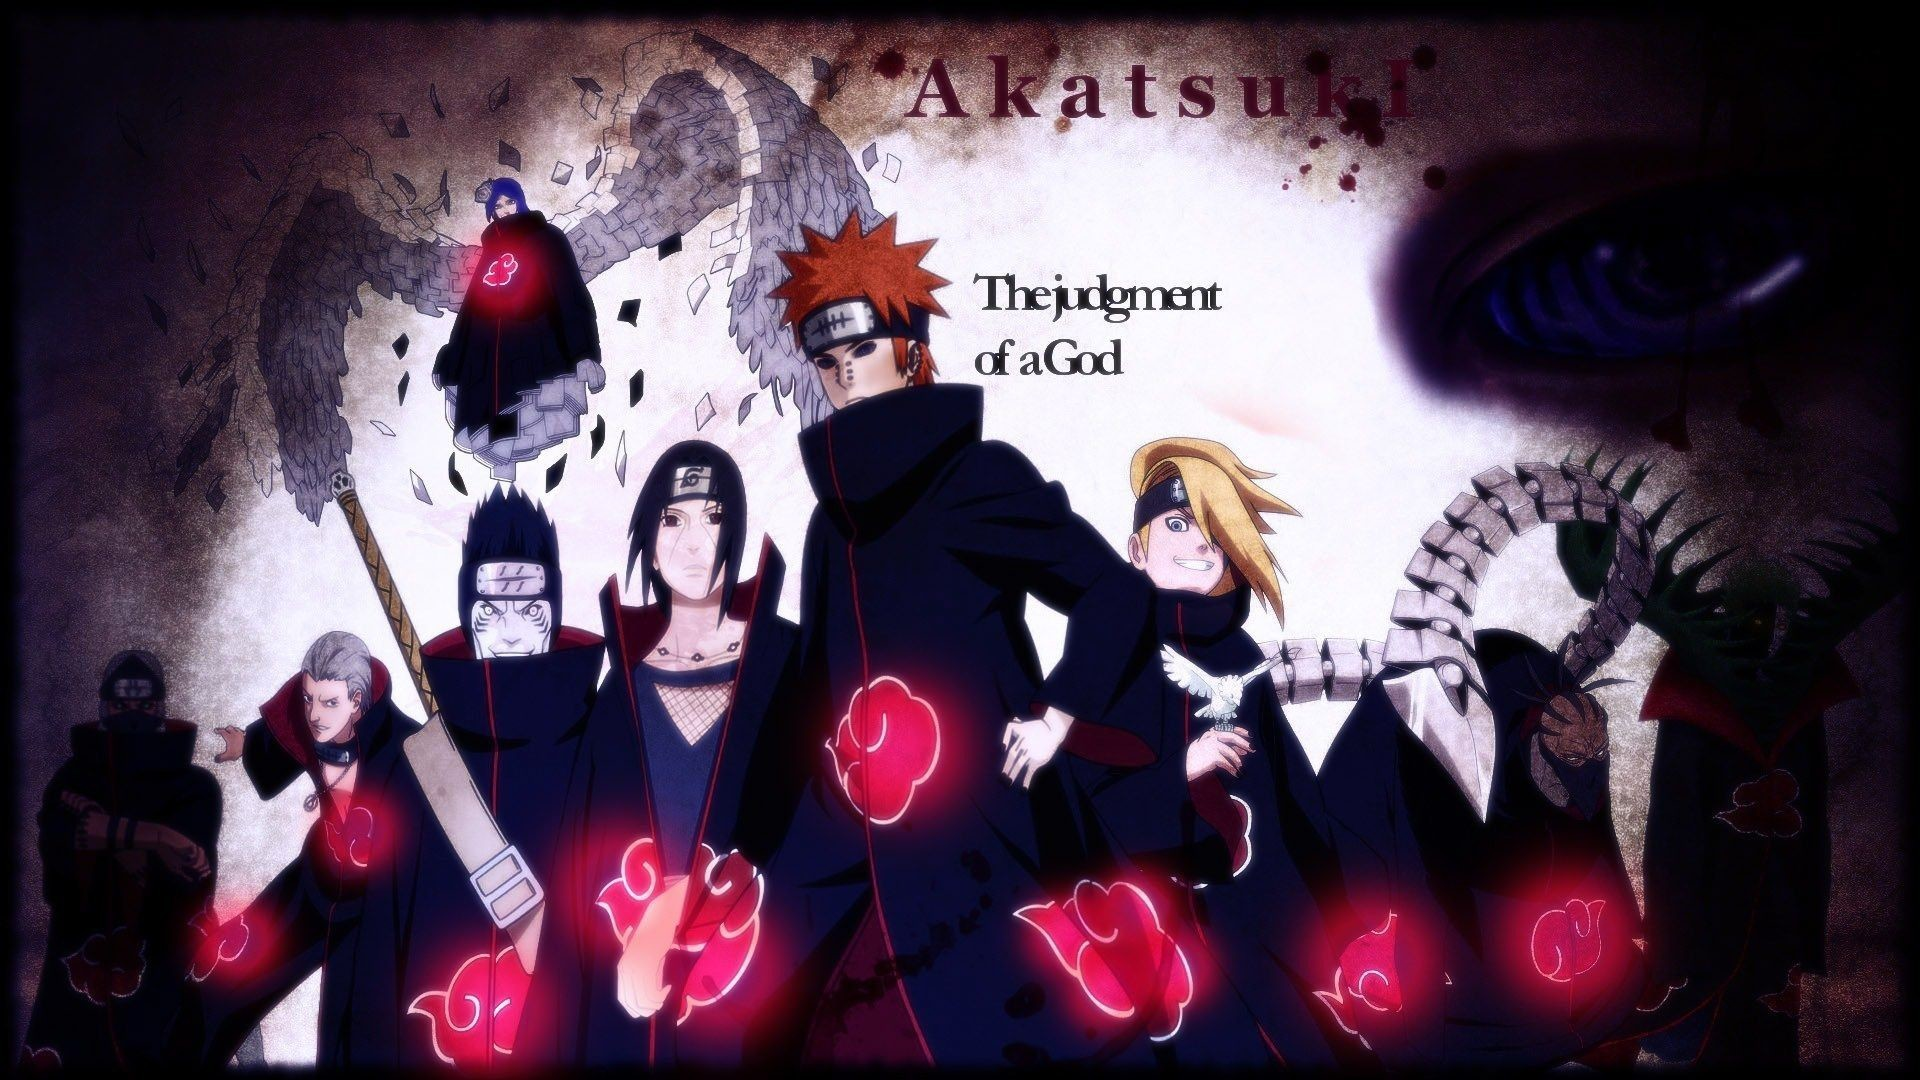 Res: 1920x1080,  Akatsuki Orochimaru Picture Wallpaper Desktop Hd Images For Iphone